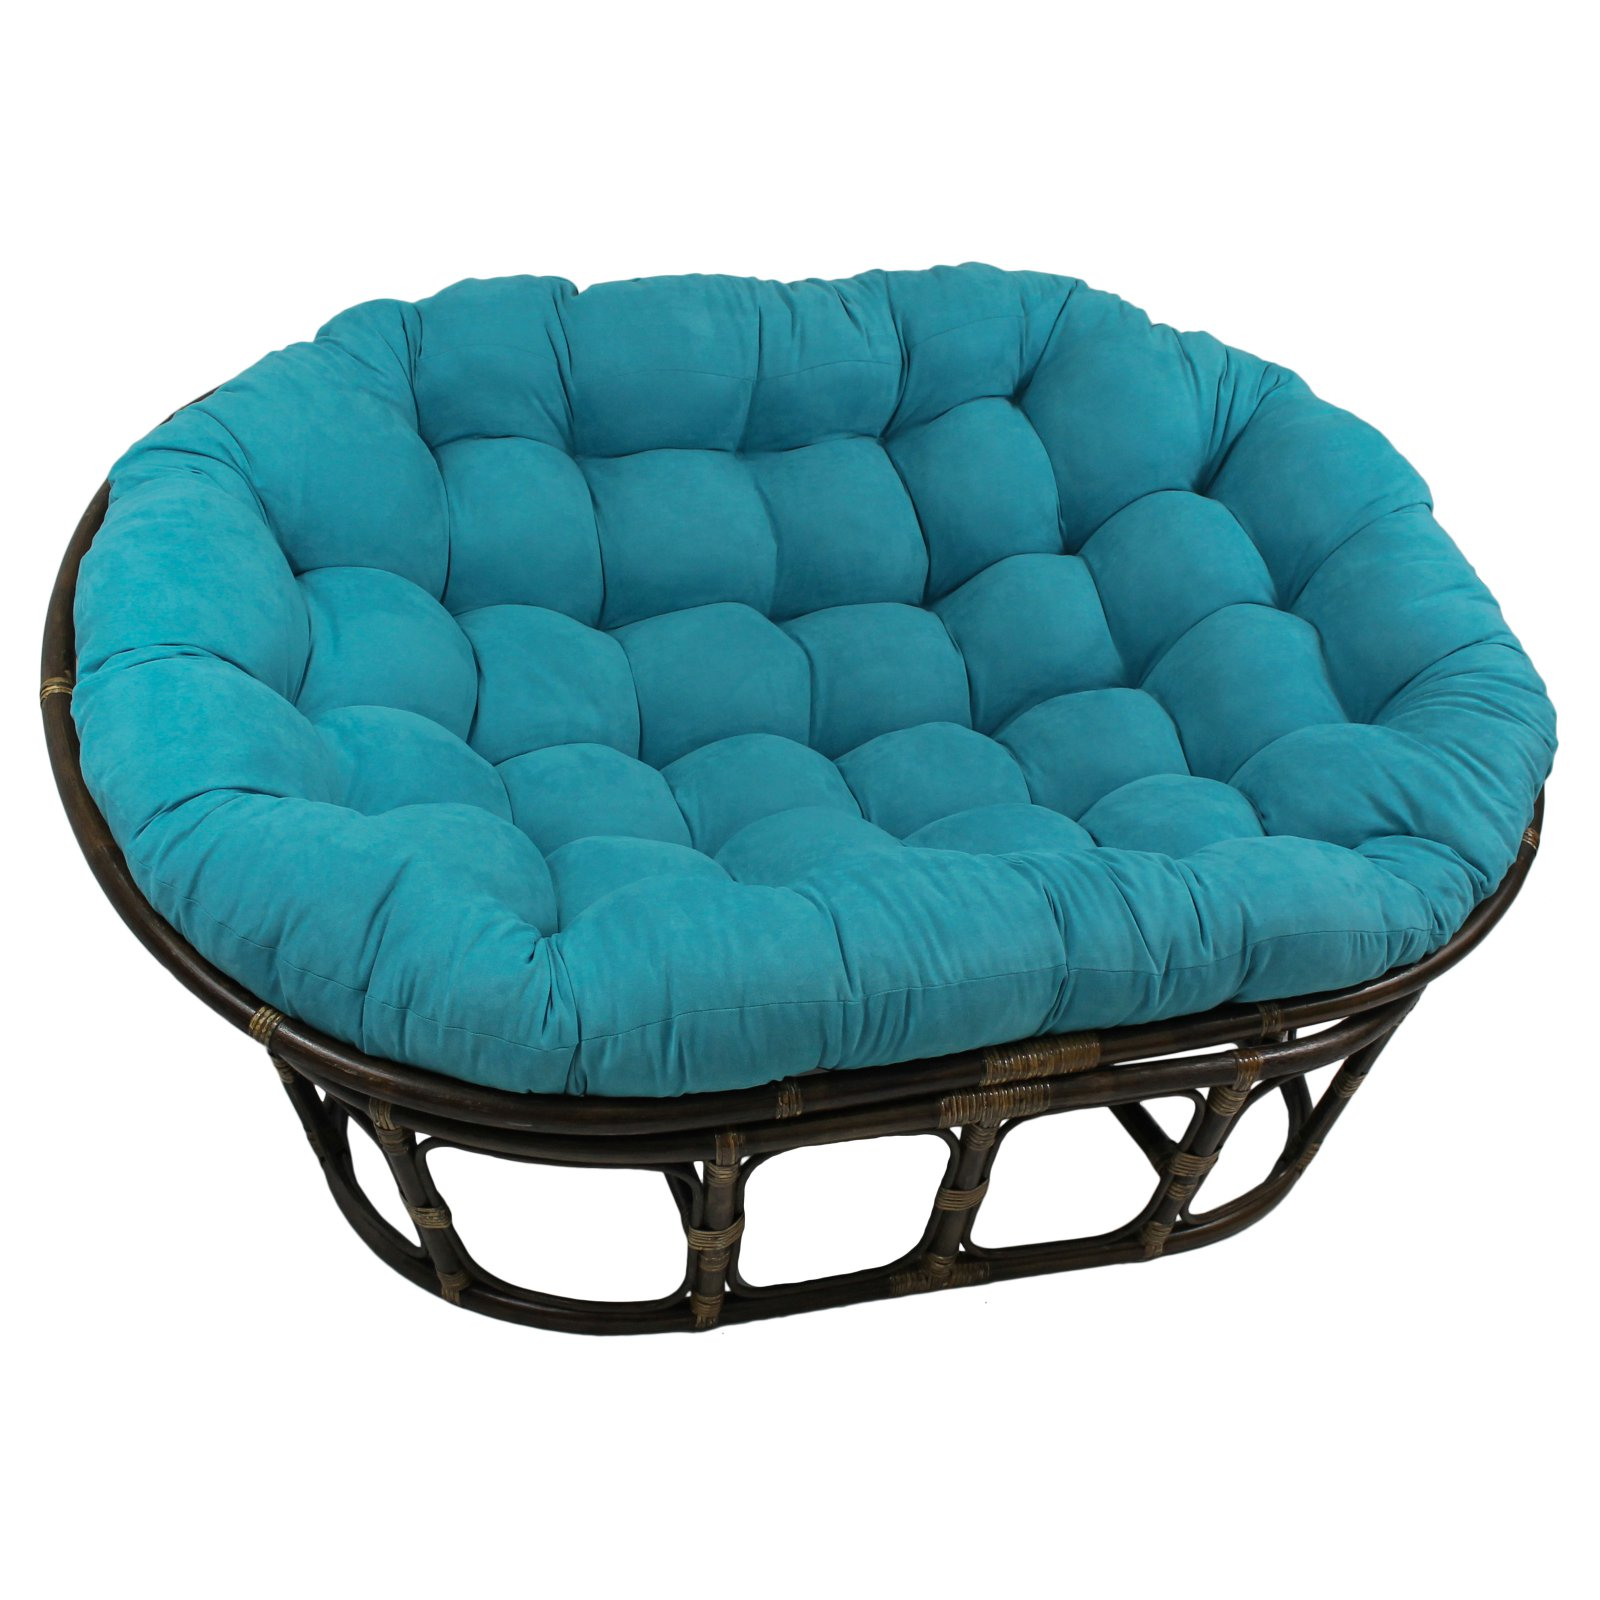 International Caravan Double Papasan Chair with Micro Suede Cushion